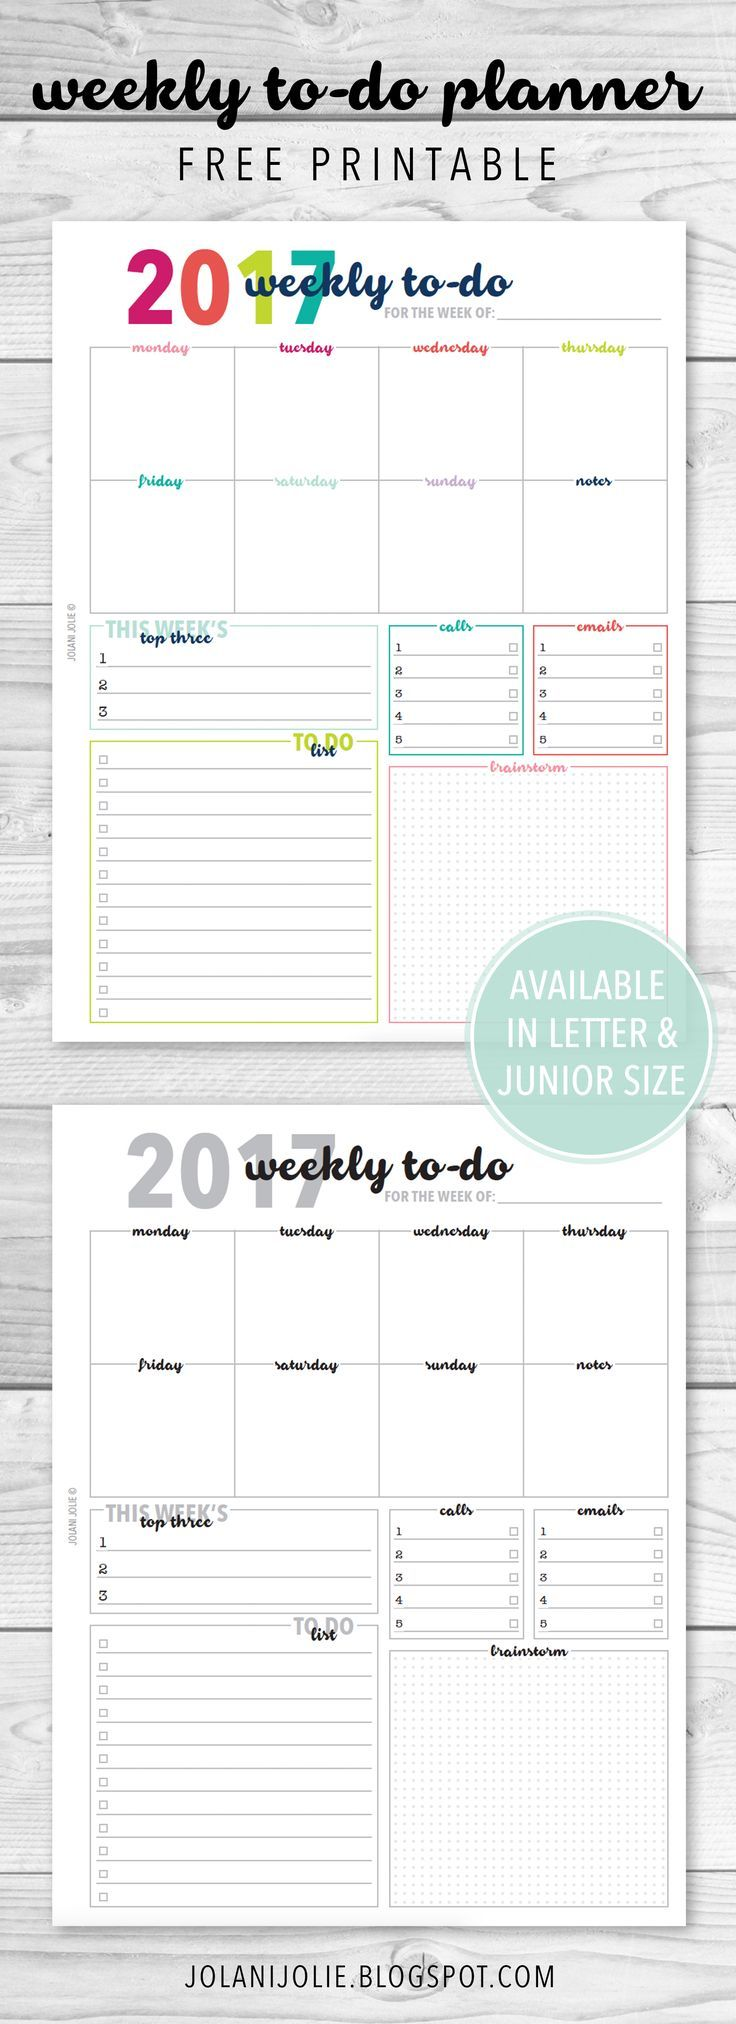 Best Printable Planner Images On   Agenda Printable